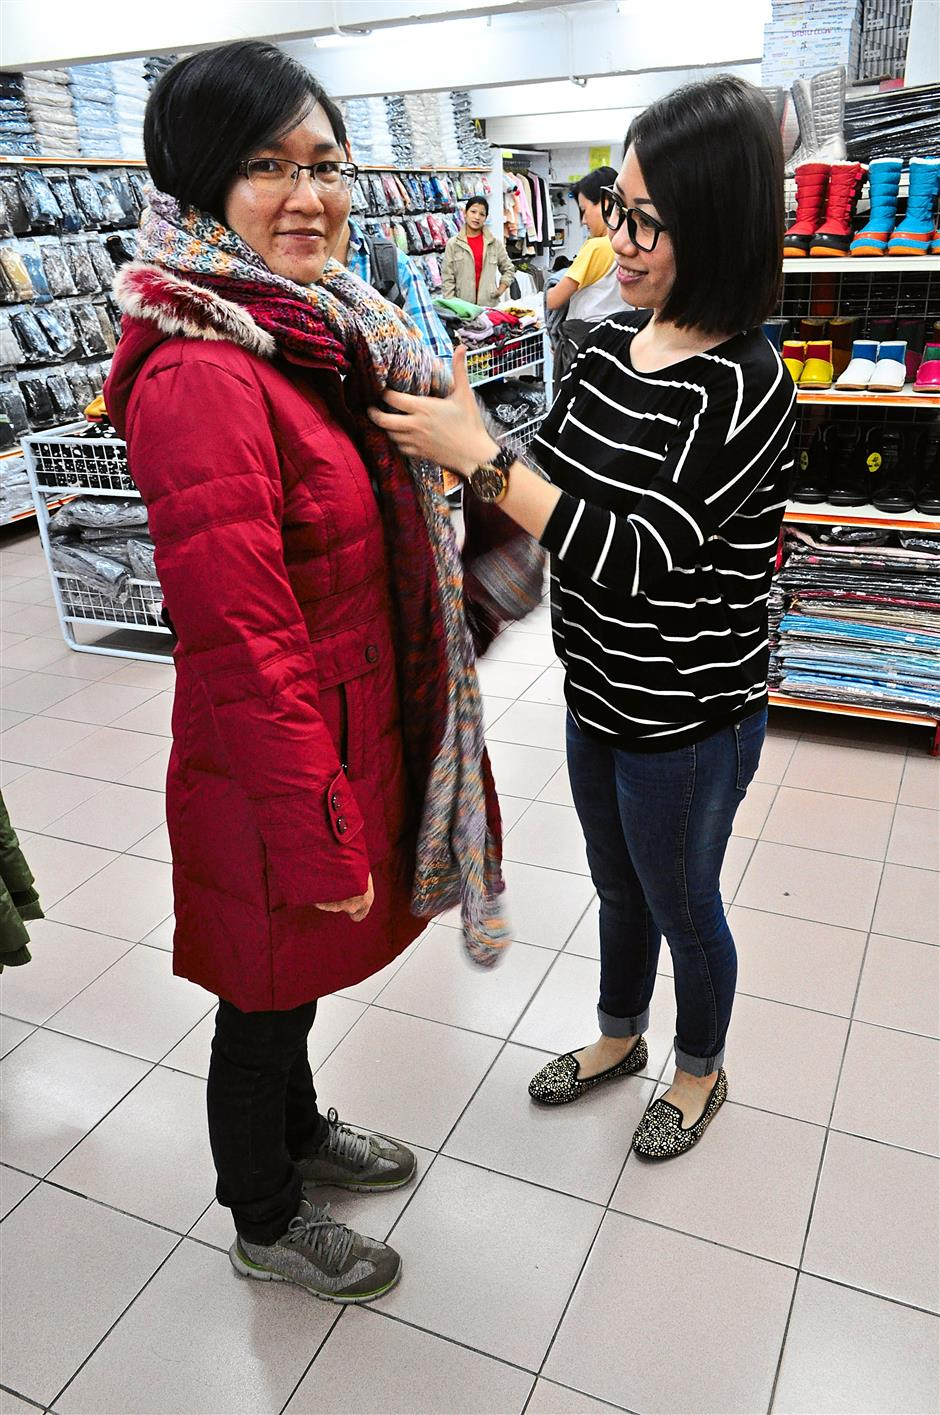 As the only sibling blessed with fashion sense, the Yuki factors in advising customers how to chill with their winter looks helped Kok Kong grows its business.